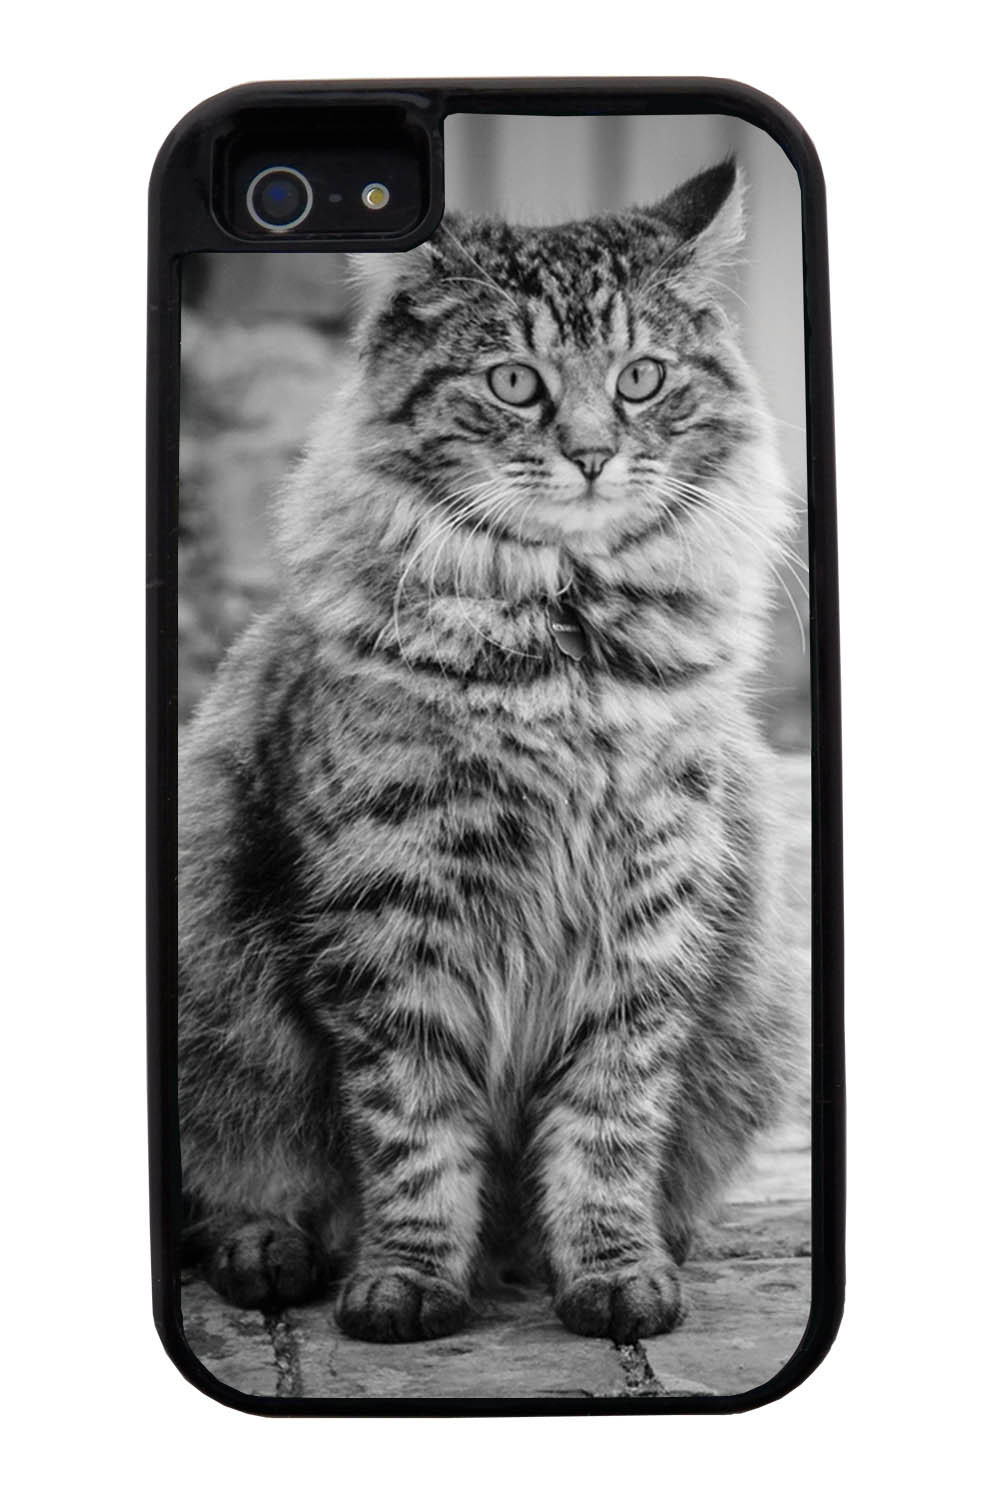 Apple iPhone 5 / 5S Cat Case - Fur-ball Cat Photo - Cute Pictures - Black Tough Hybrid Case